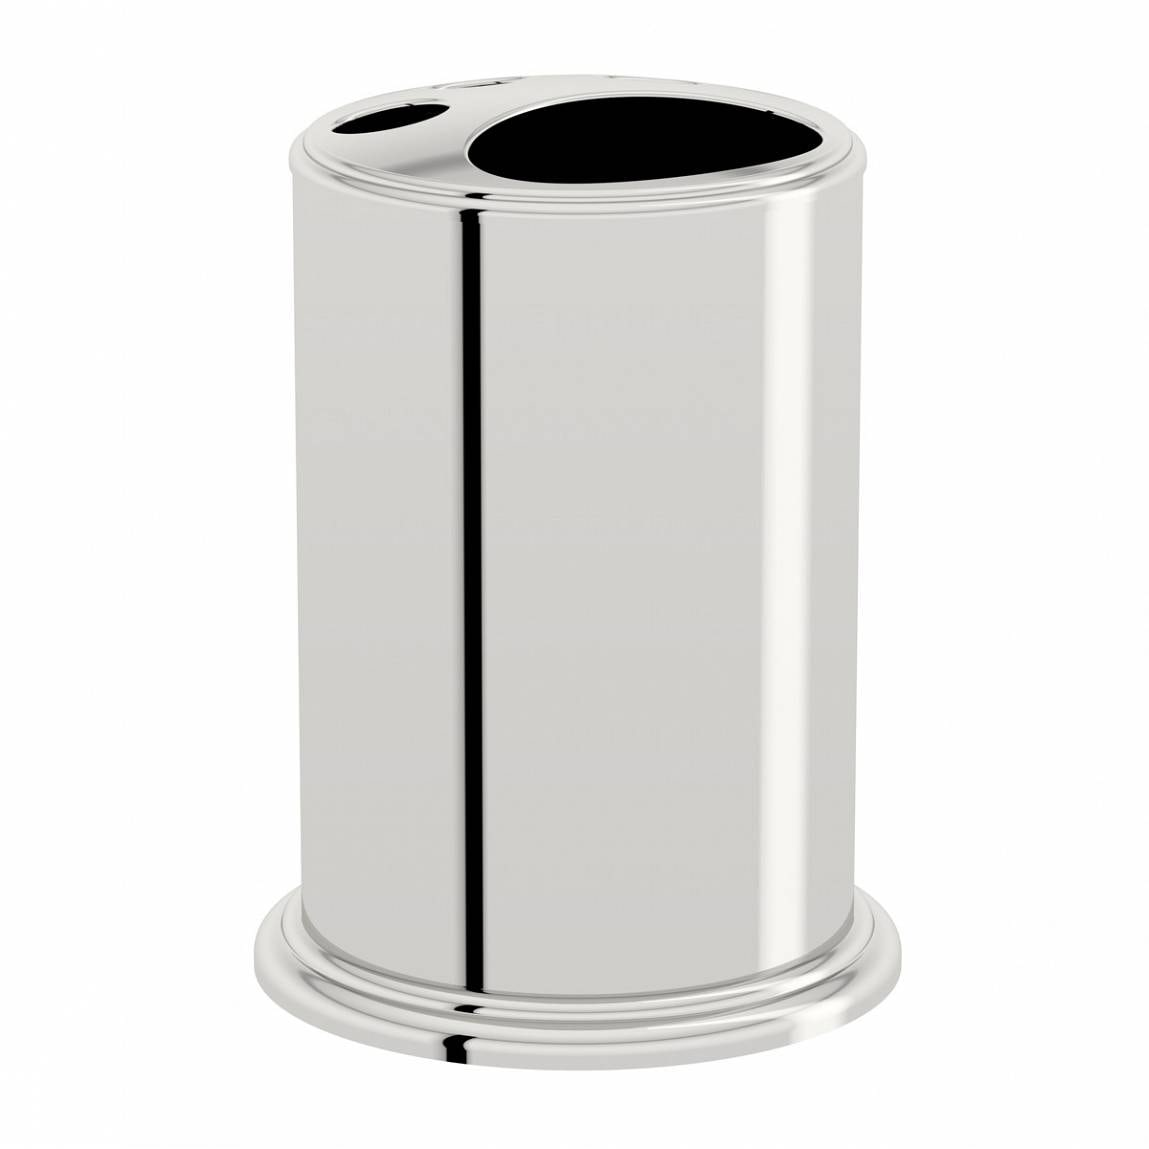 Orchard Options freestanding stainless steel toothbrush holder